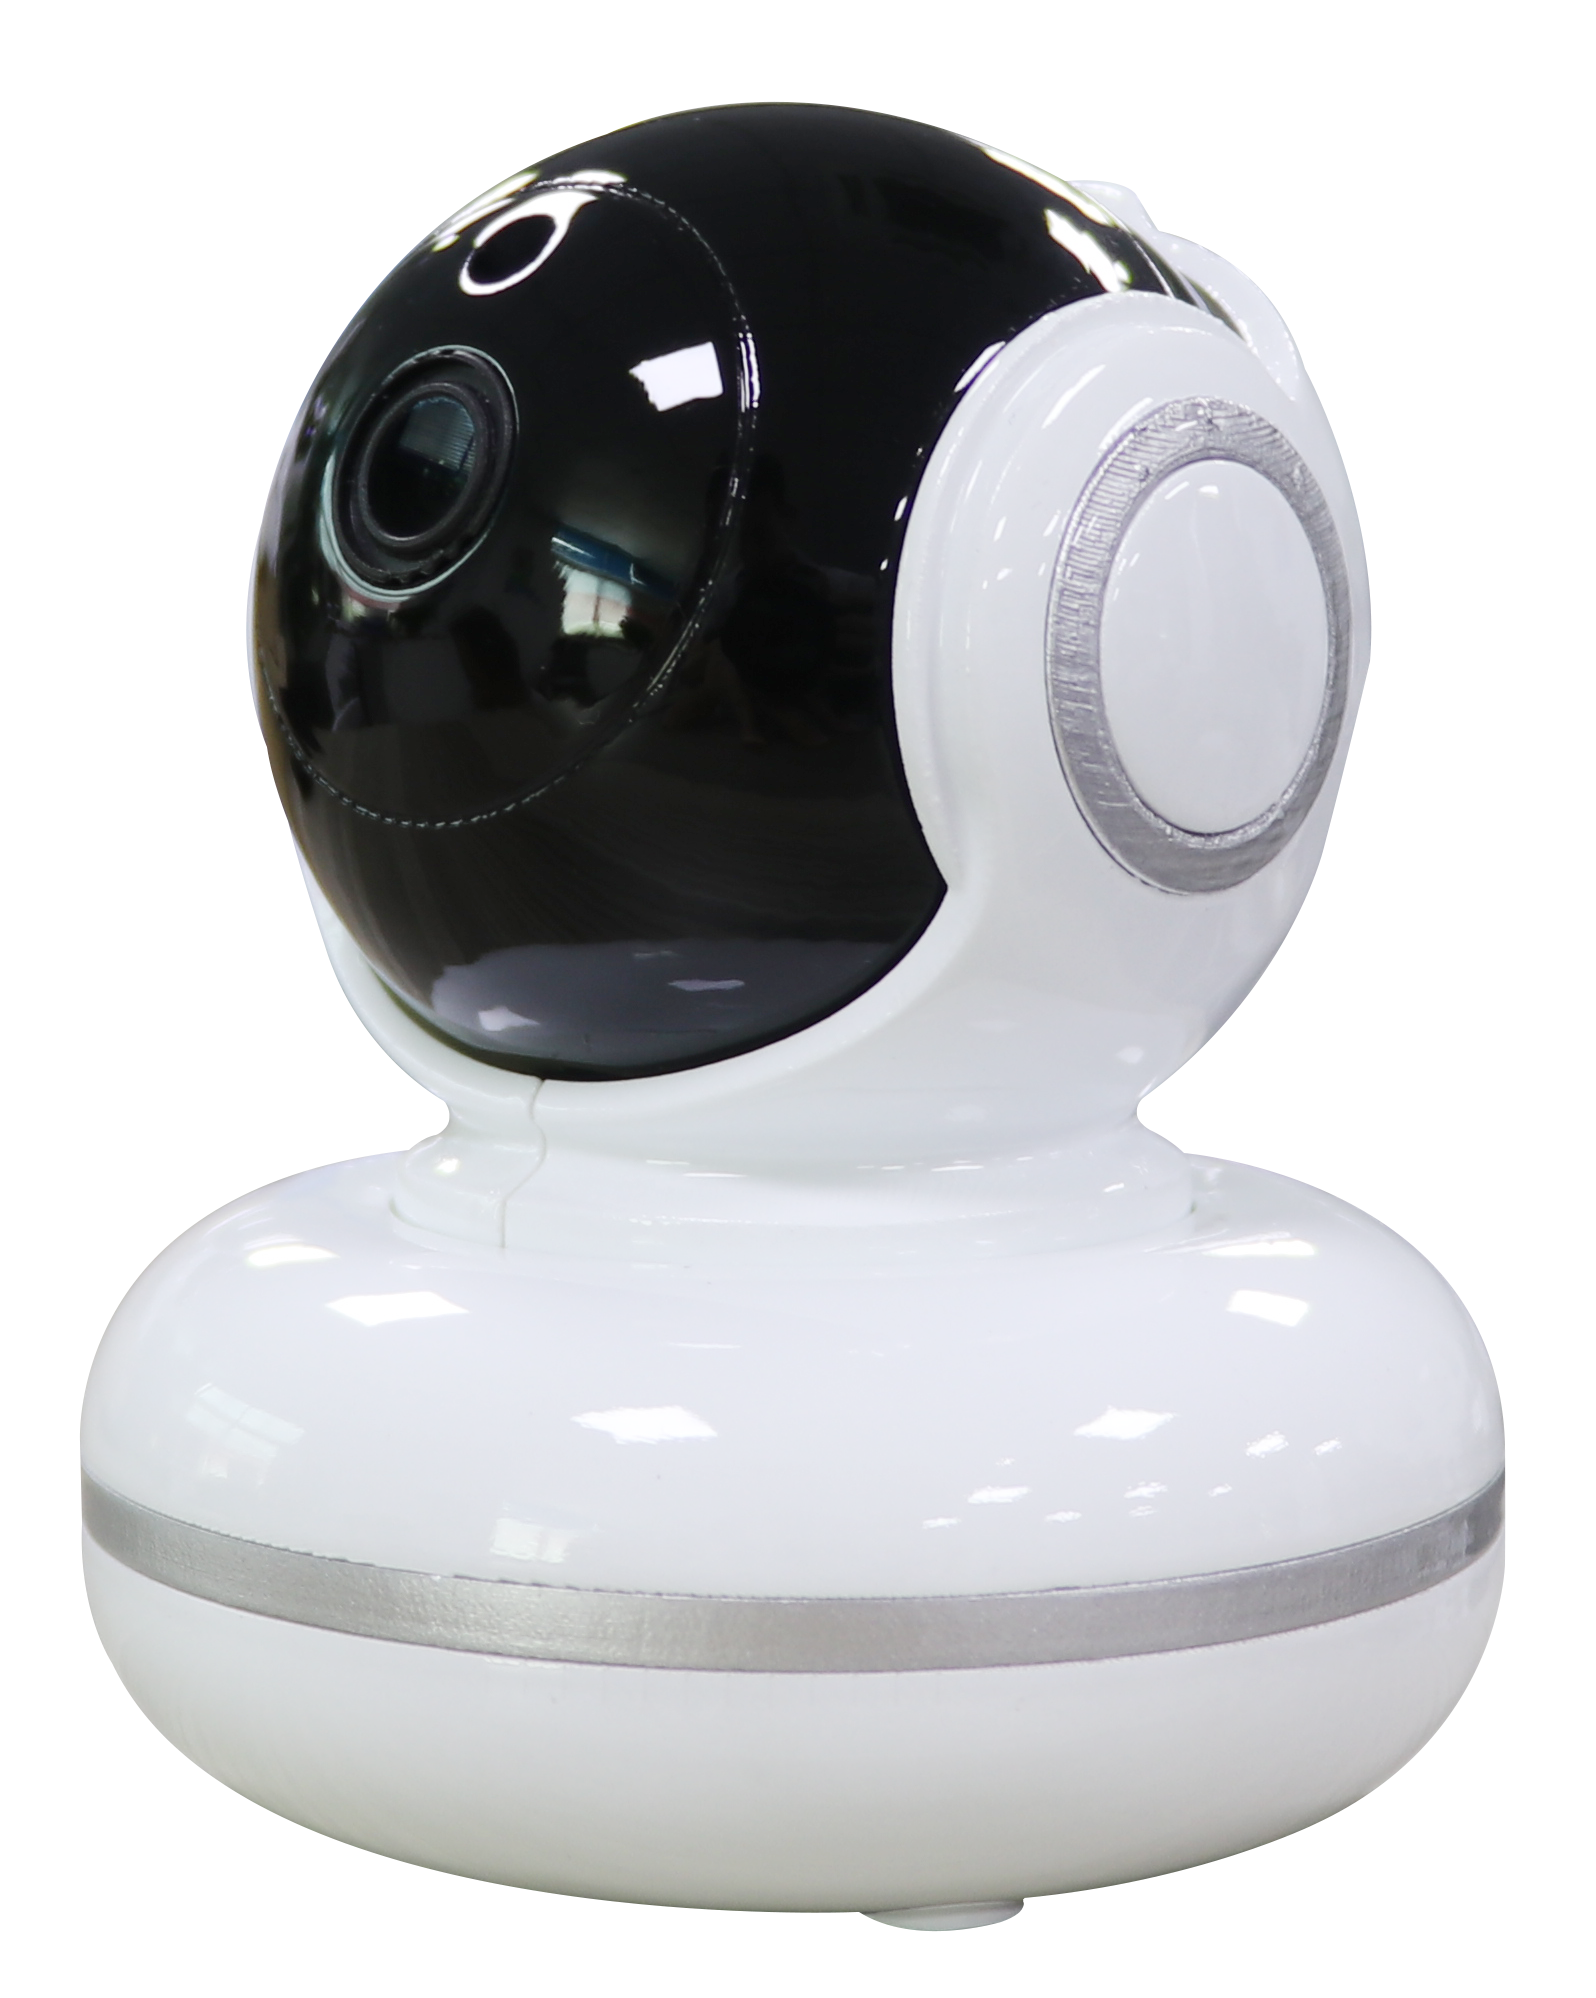 New Tuya Smart Home Wireless Security WiFi IP  camera with Movement Motion Cloud Storage Baby Monitoring 128G sd card